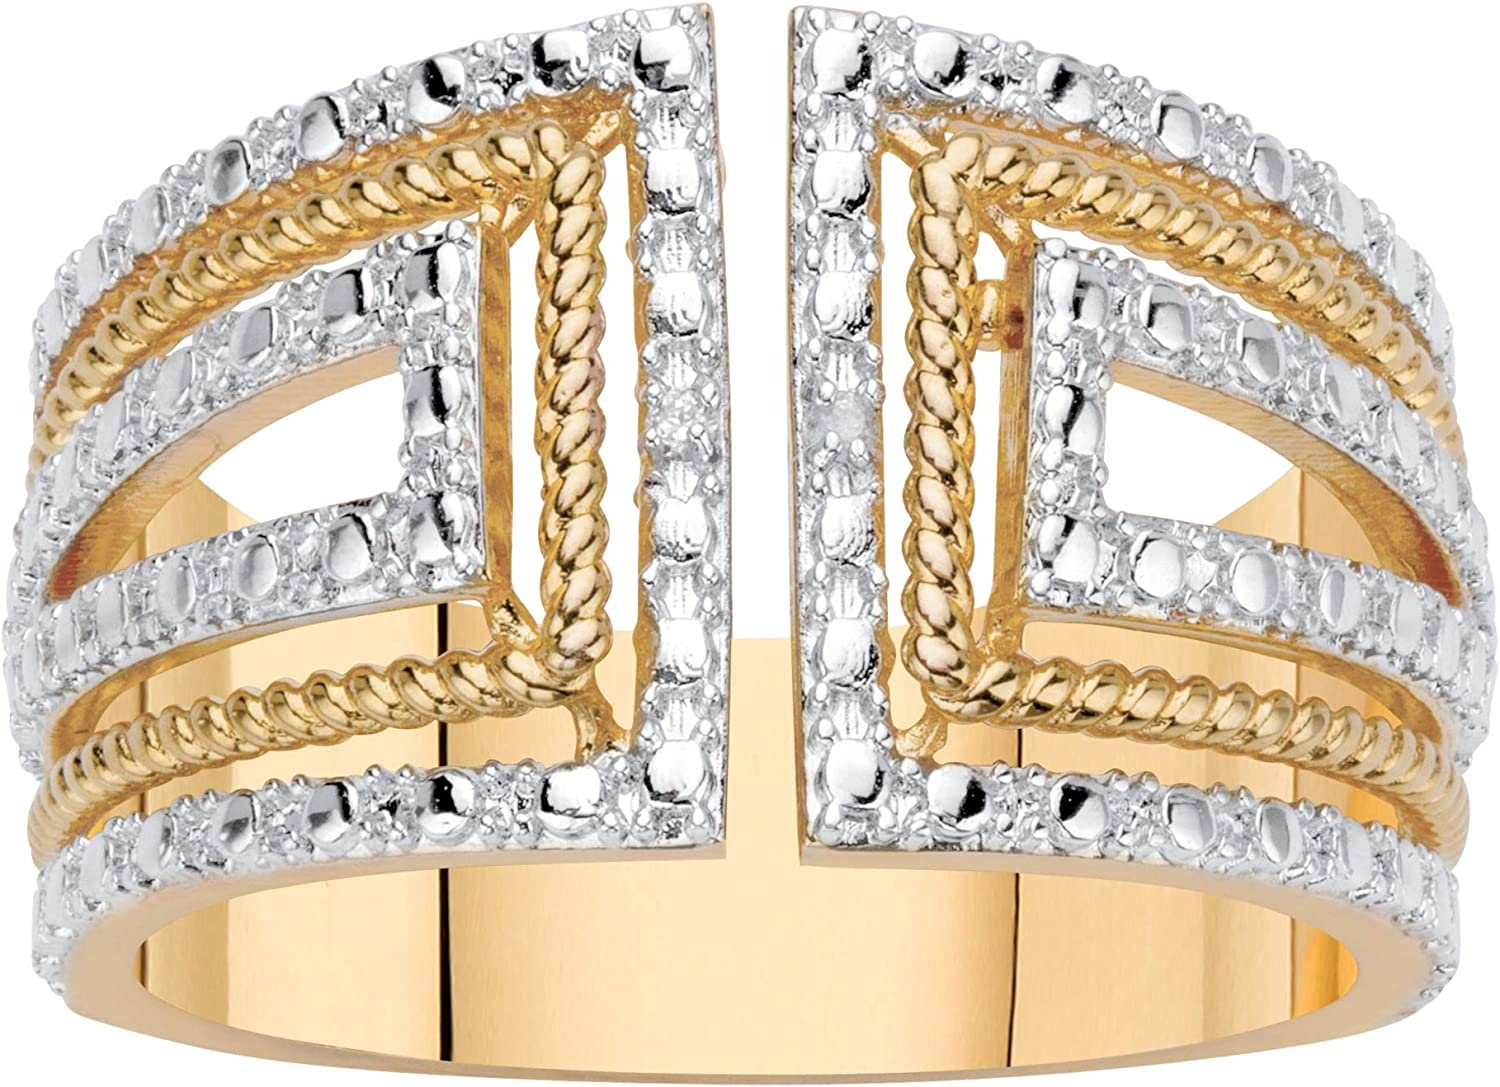 Palm Beach Jewelry 18K Yellow Gold Genuine Diamond Accent Two Tone Art Deco Wide Band Ring